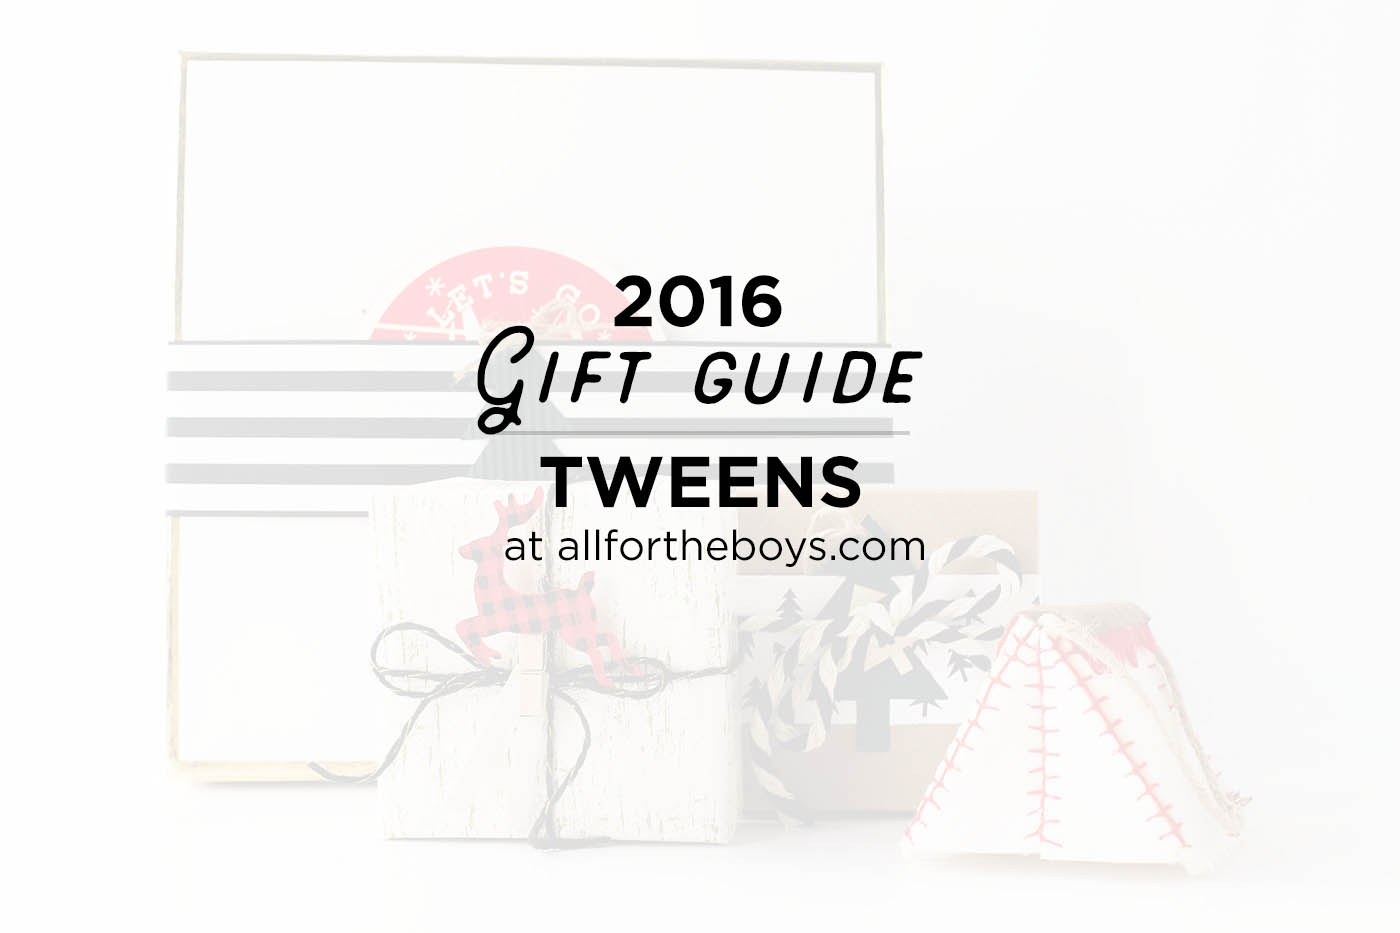 2016 Gift Guide for preschoolers - great gift ideas for tweens or kids around 9-12 years old